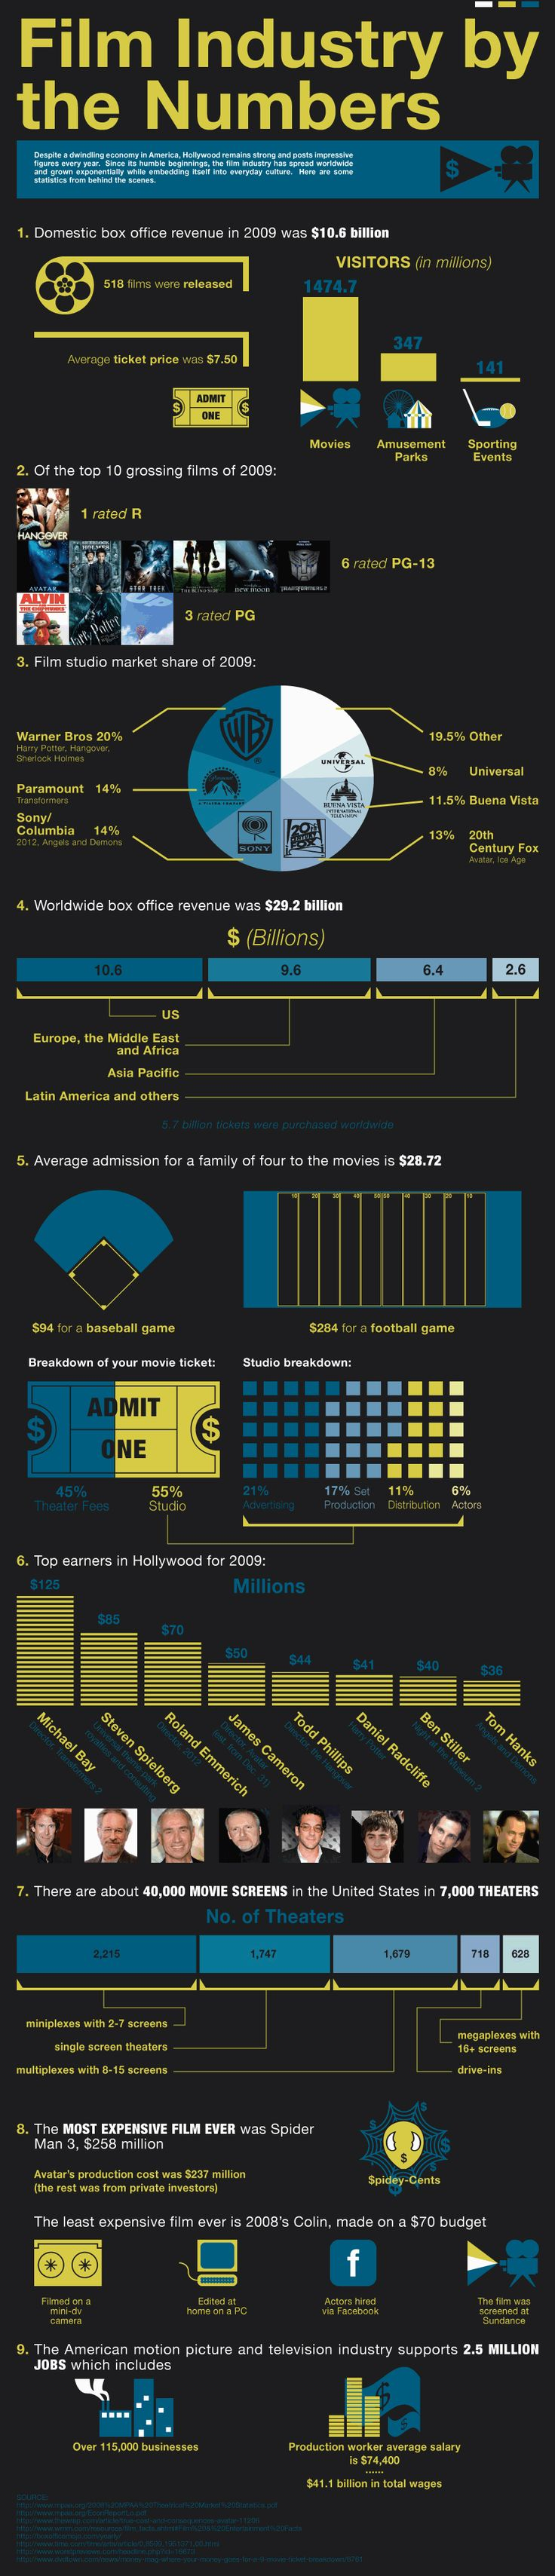 Film Industry by the Numbers [infographic]